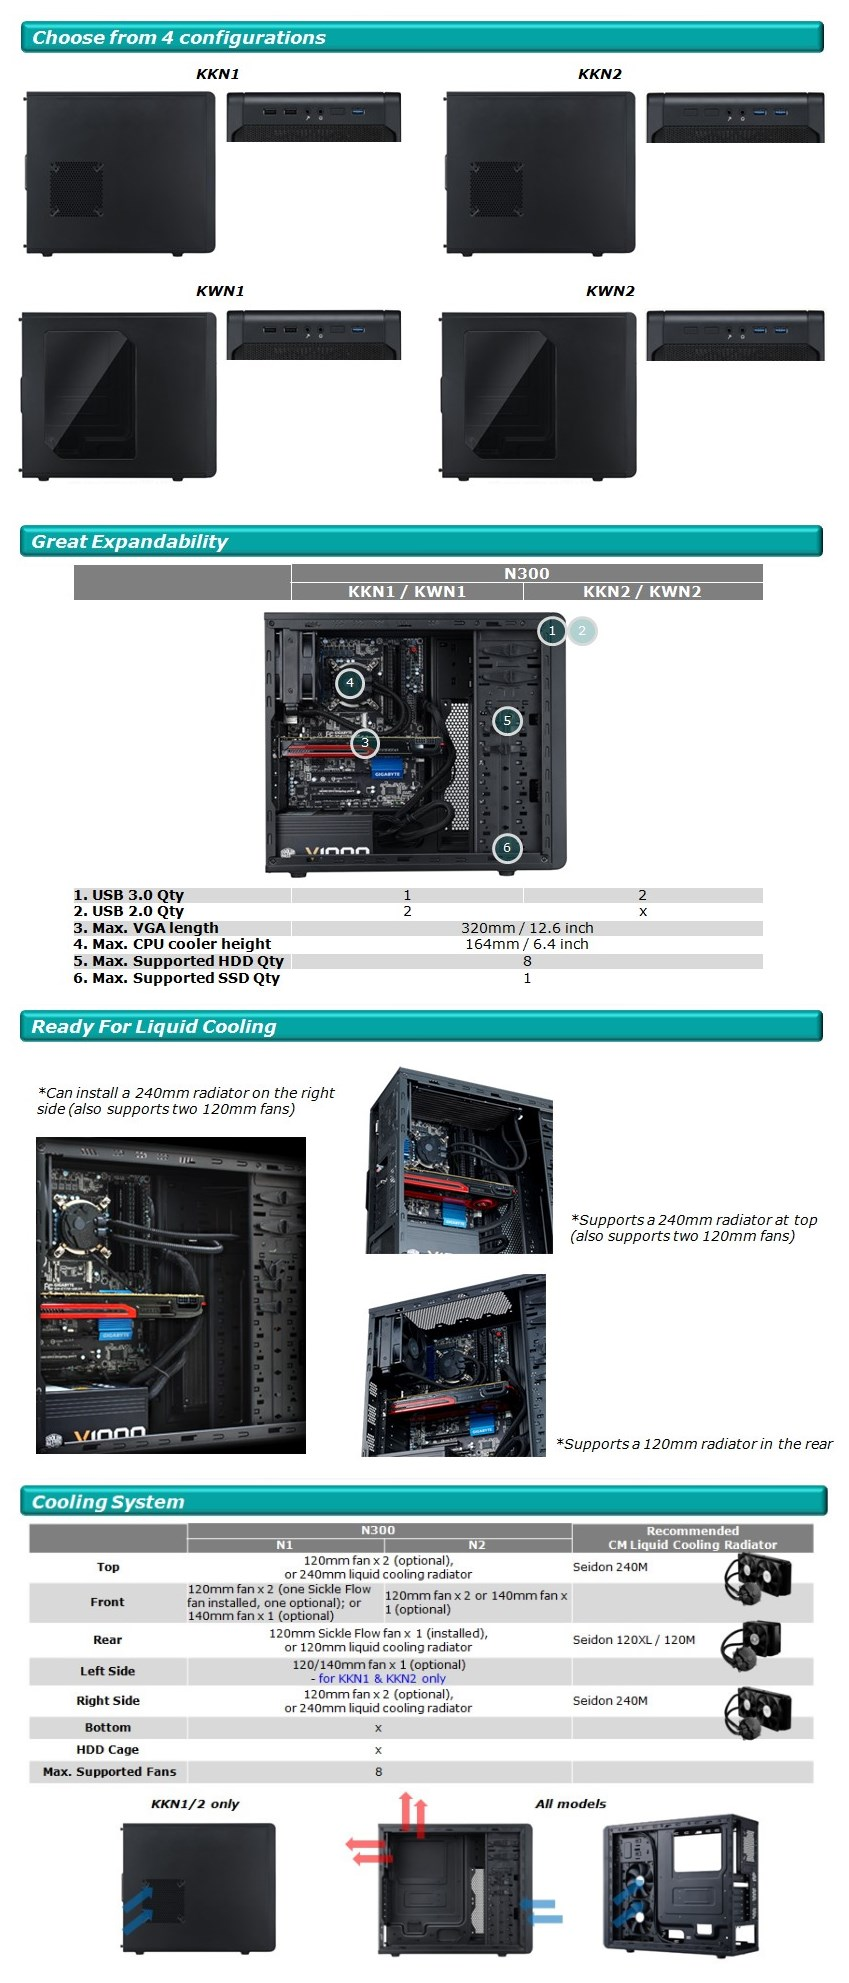 Cooler Master N300 KKN1 Mid-Tower ATX Case - Desktop Overview 1